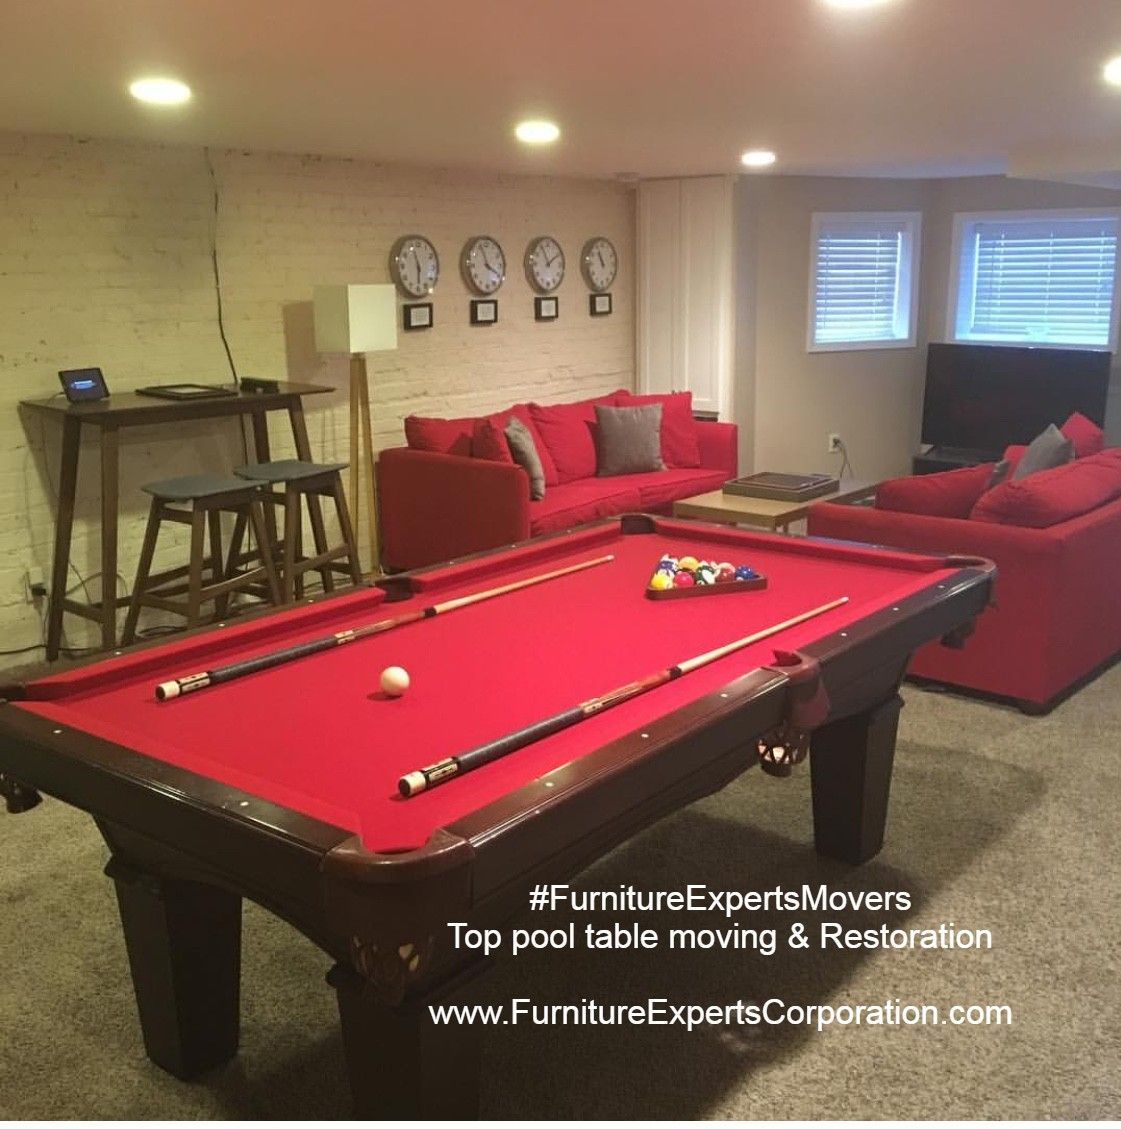 Pool table refelting Pool table moving, Pool table